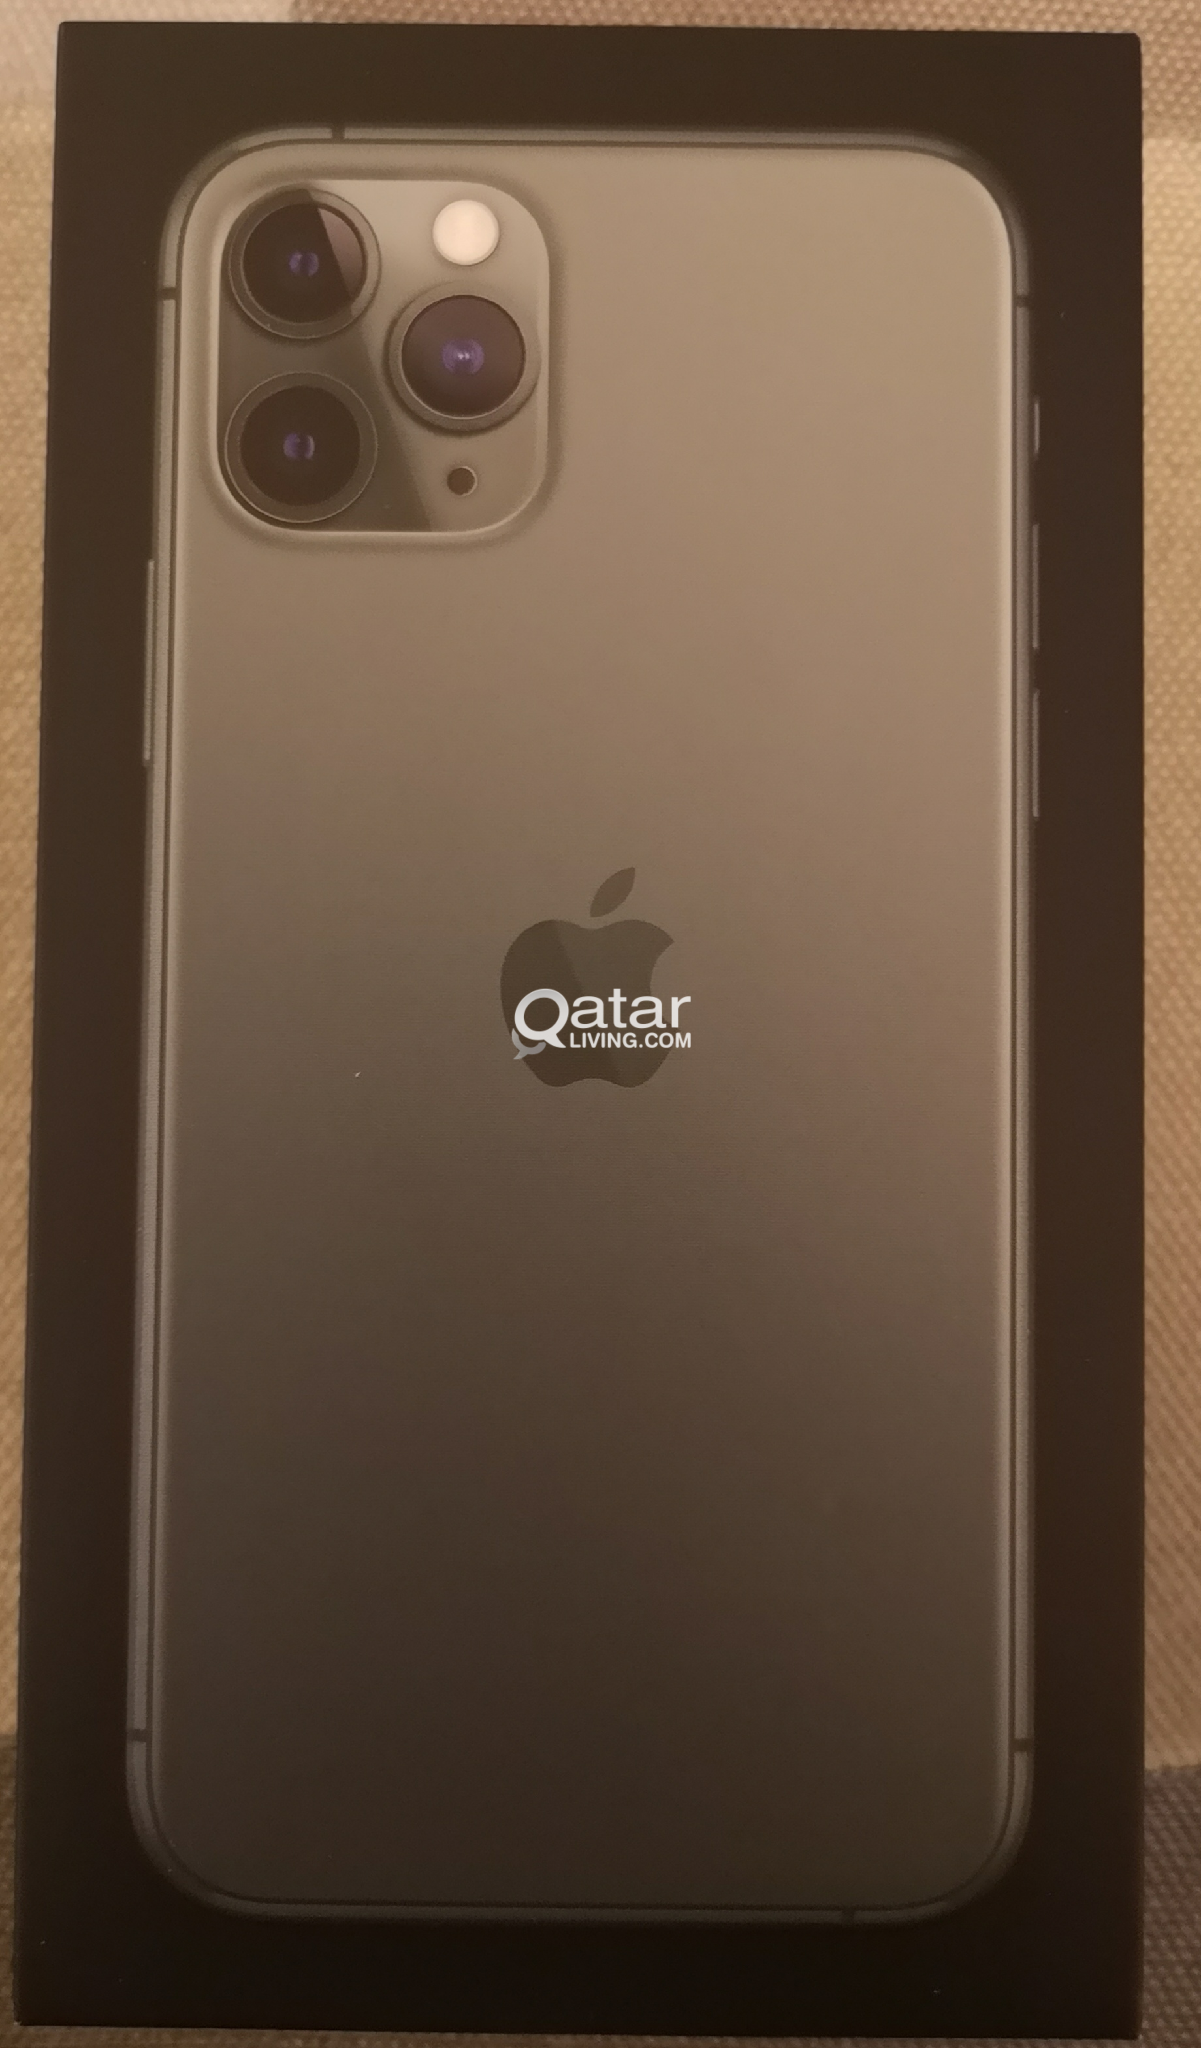 Original 11 Pro Iphone Price In Qatar - hd wallpaper